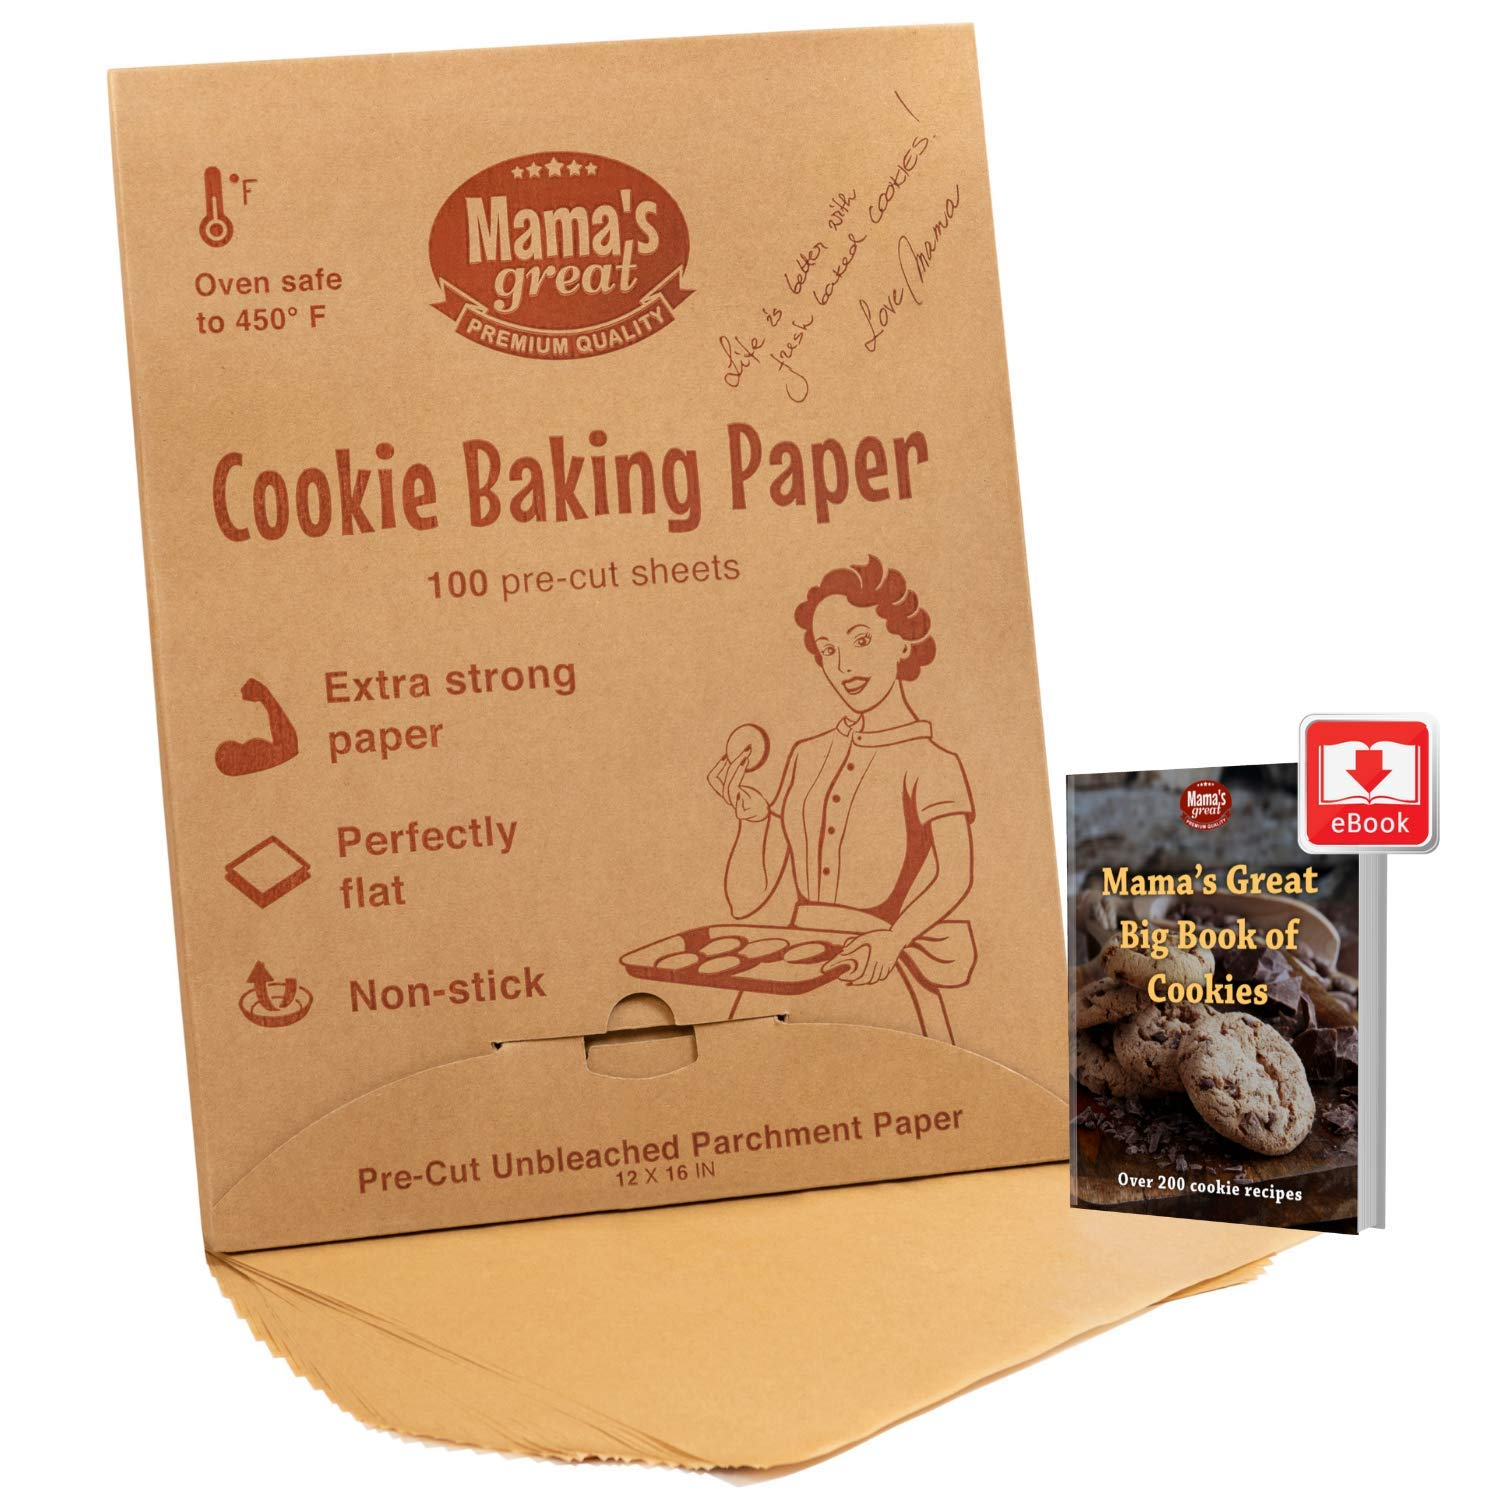 Unbleached Brown Parchment Paper Sheets for Half Sheet Pans (100 Pcs). Pre Cut 12 x 16 Inches. Double Side Silicone Coated Cookie Sheet Liner. Extra Thick and Strong. Best for Baking Cookies & Pastry